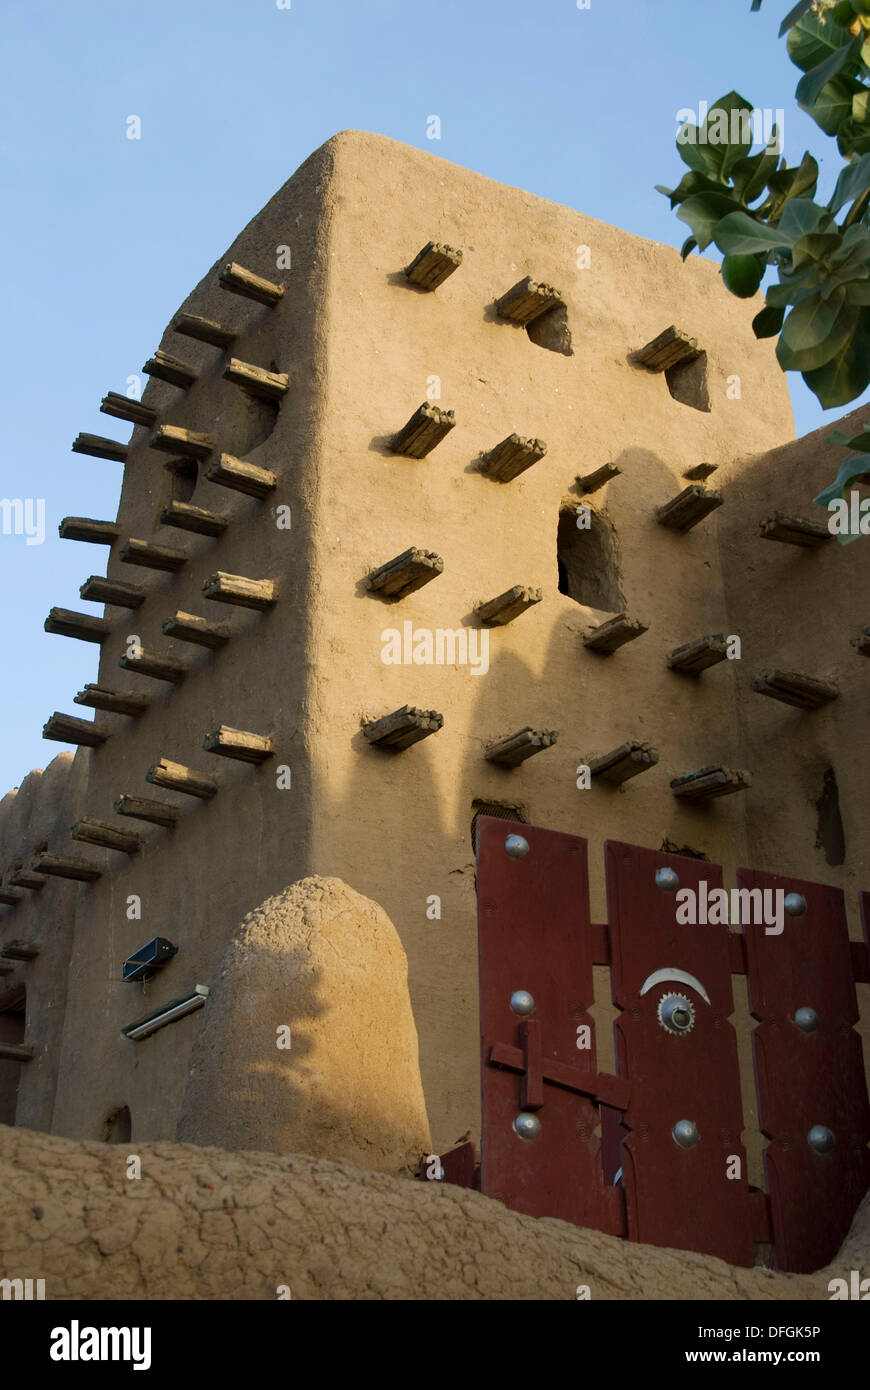 Great Mosque of Djenné. Djenné.Mopti region. Niger Inland Delta. Mali. West Africa. Stock Photo